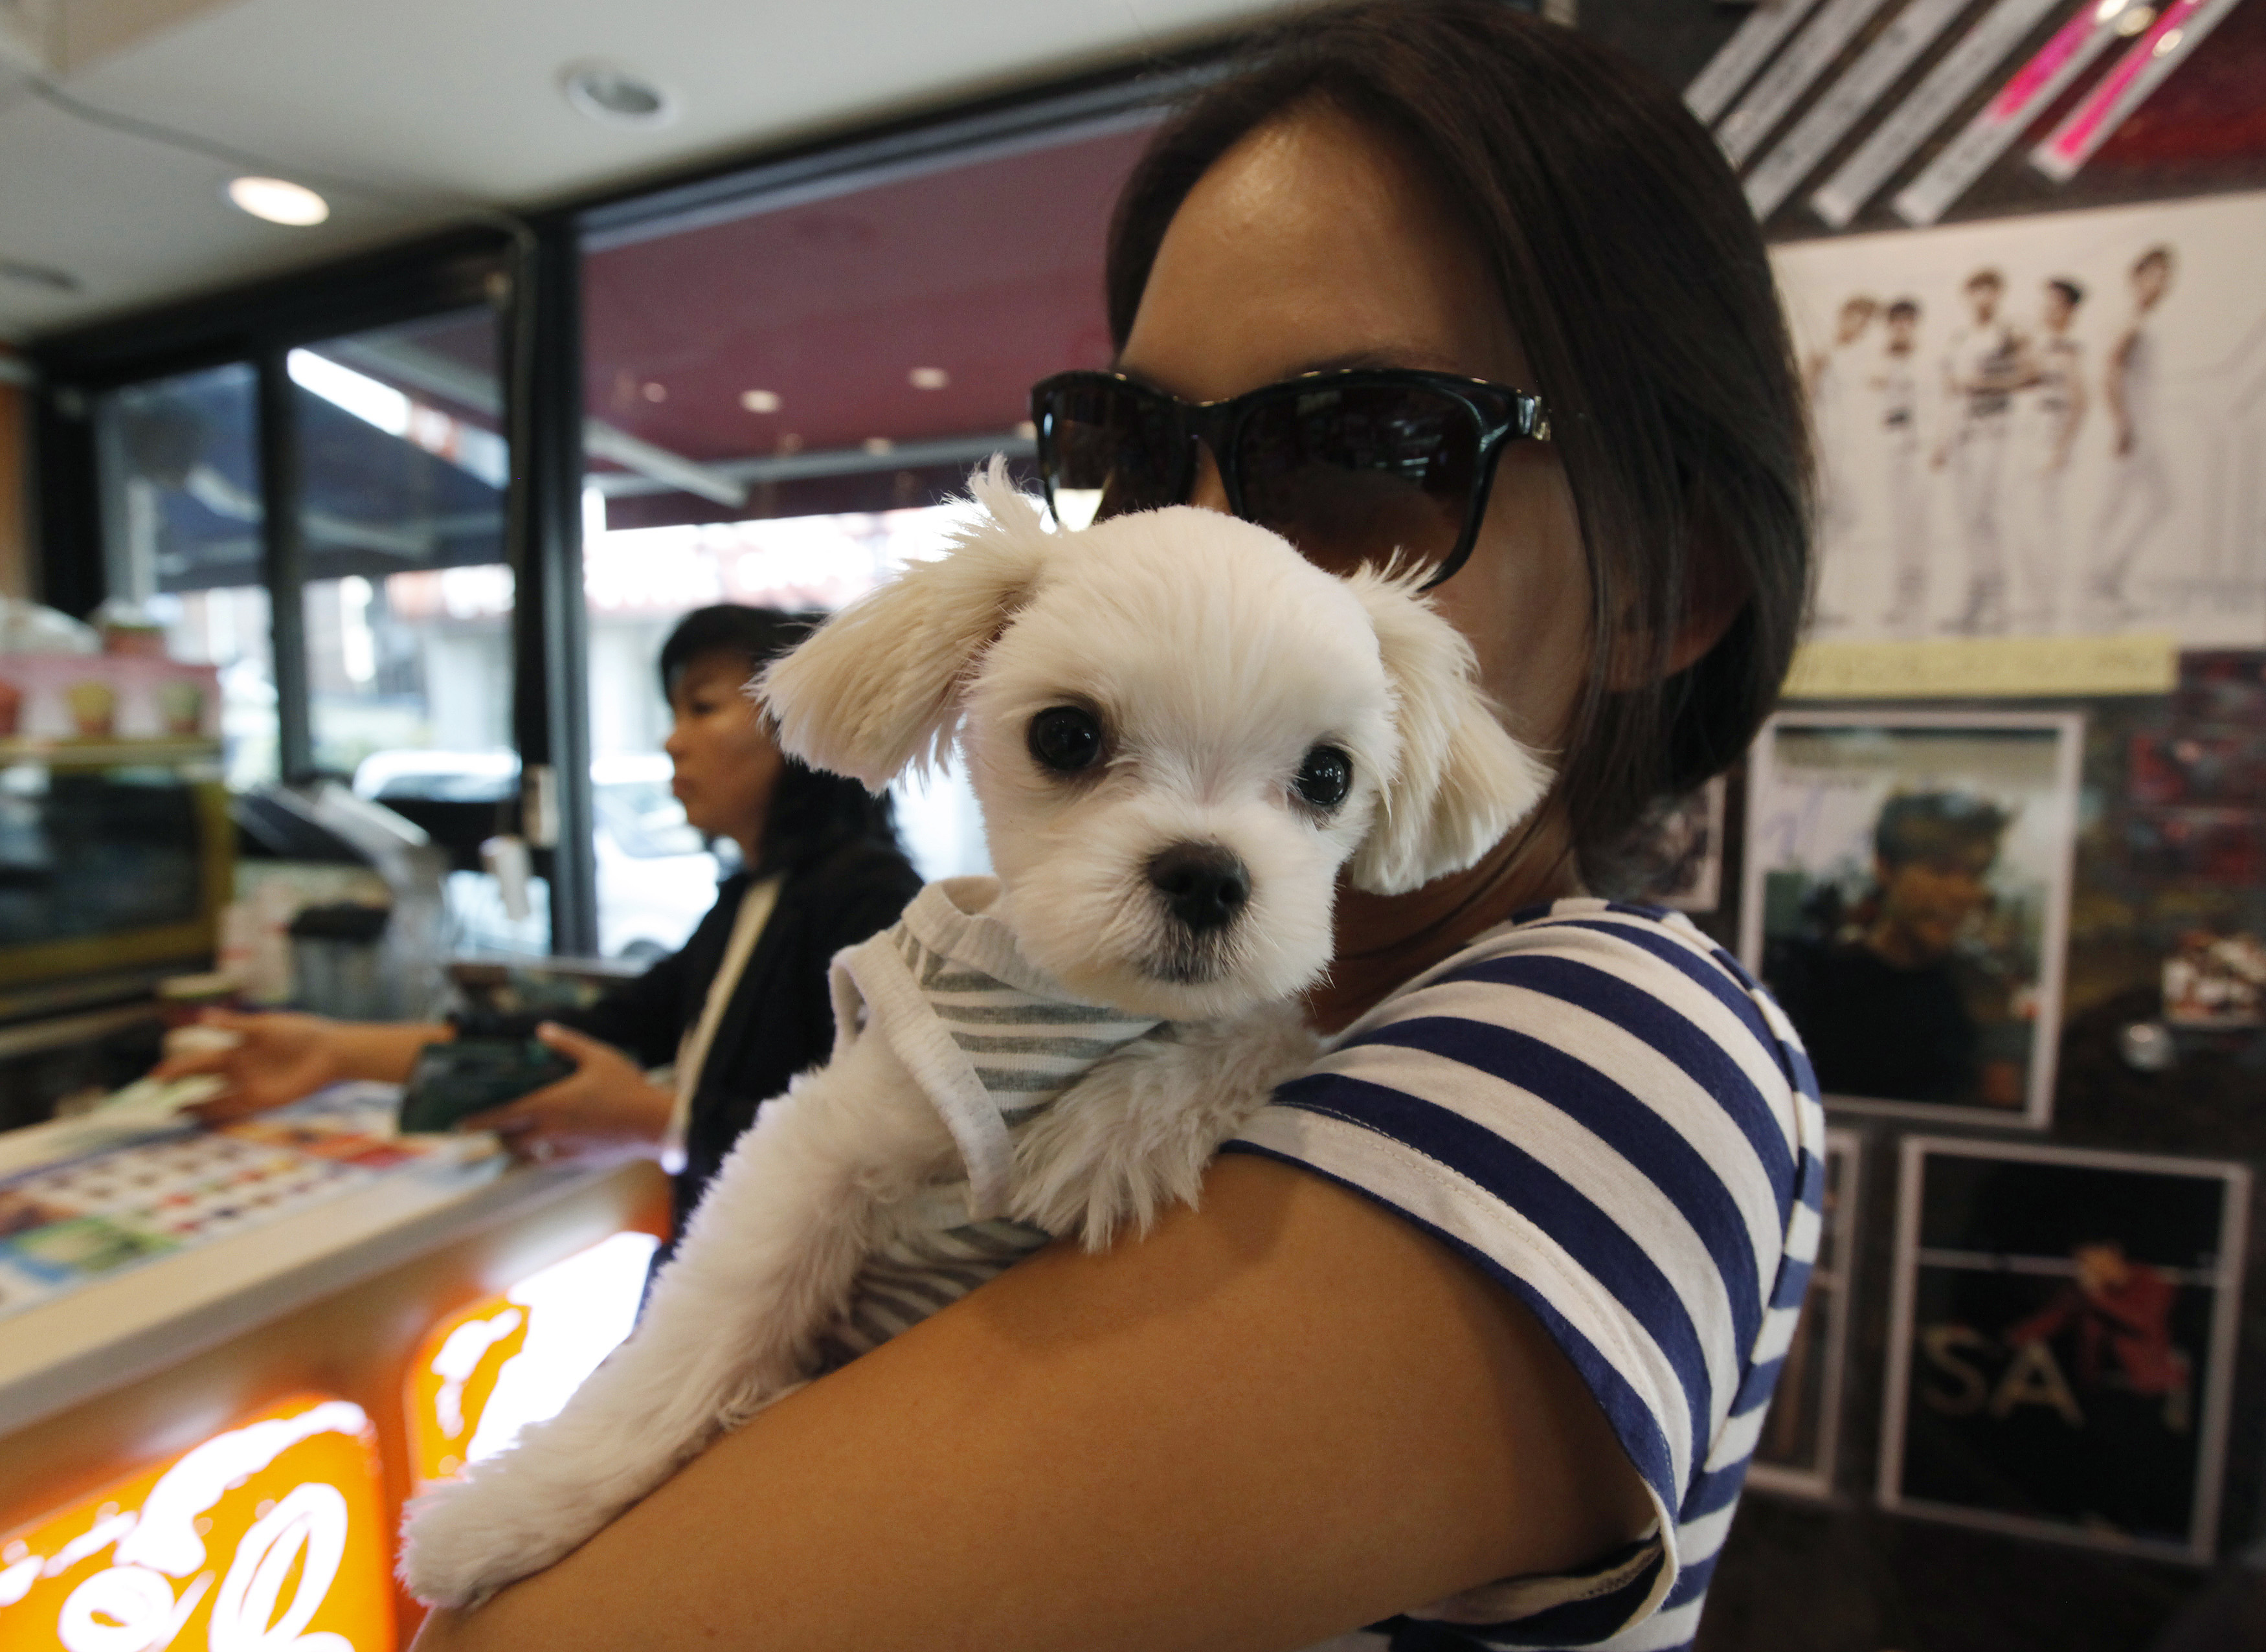 A woman carries her puppy at a cafe in the Gangnam area of Seoul